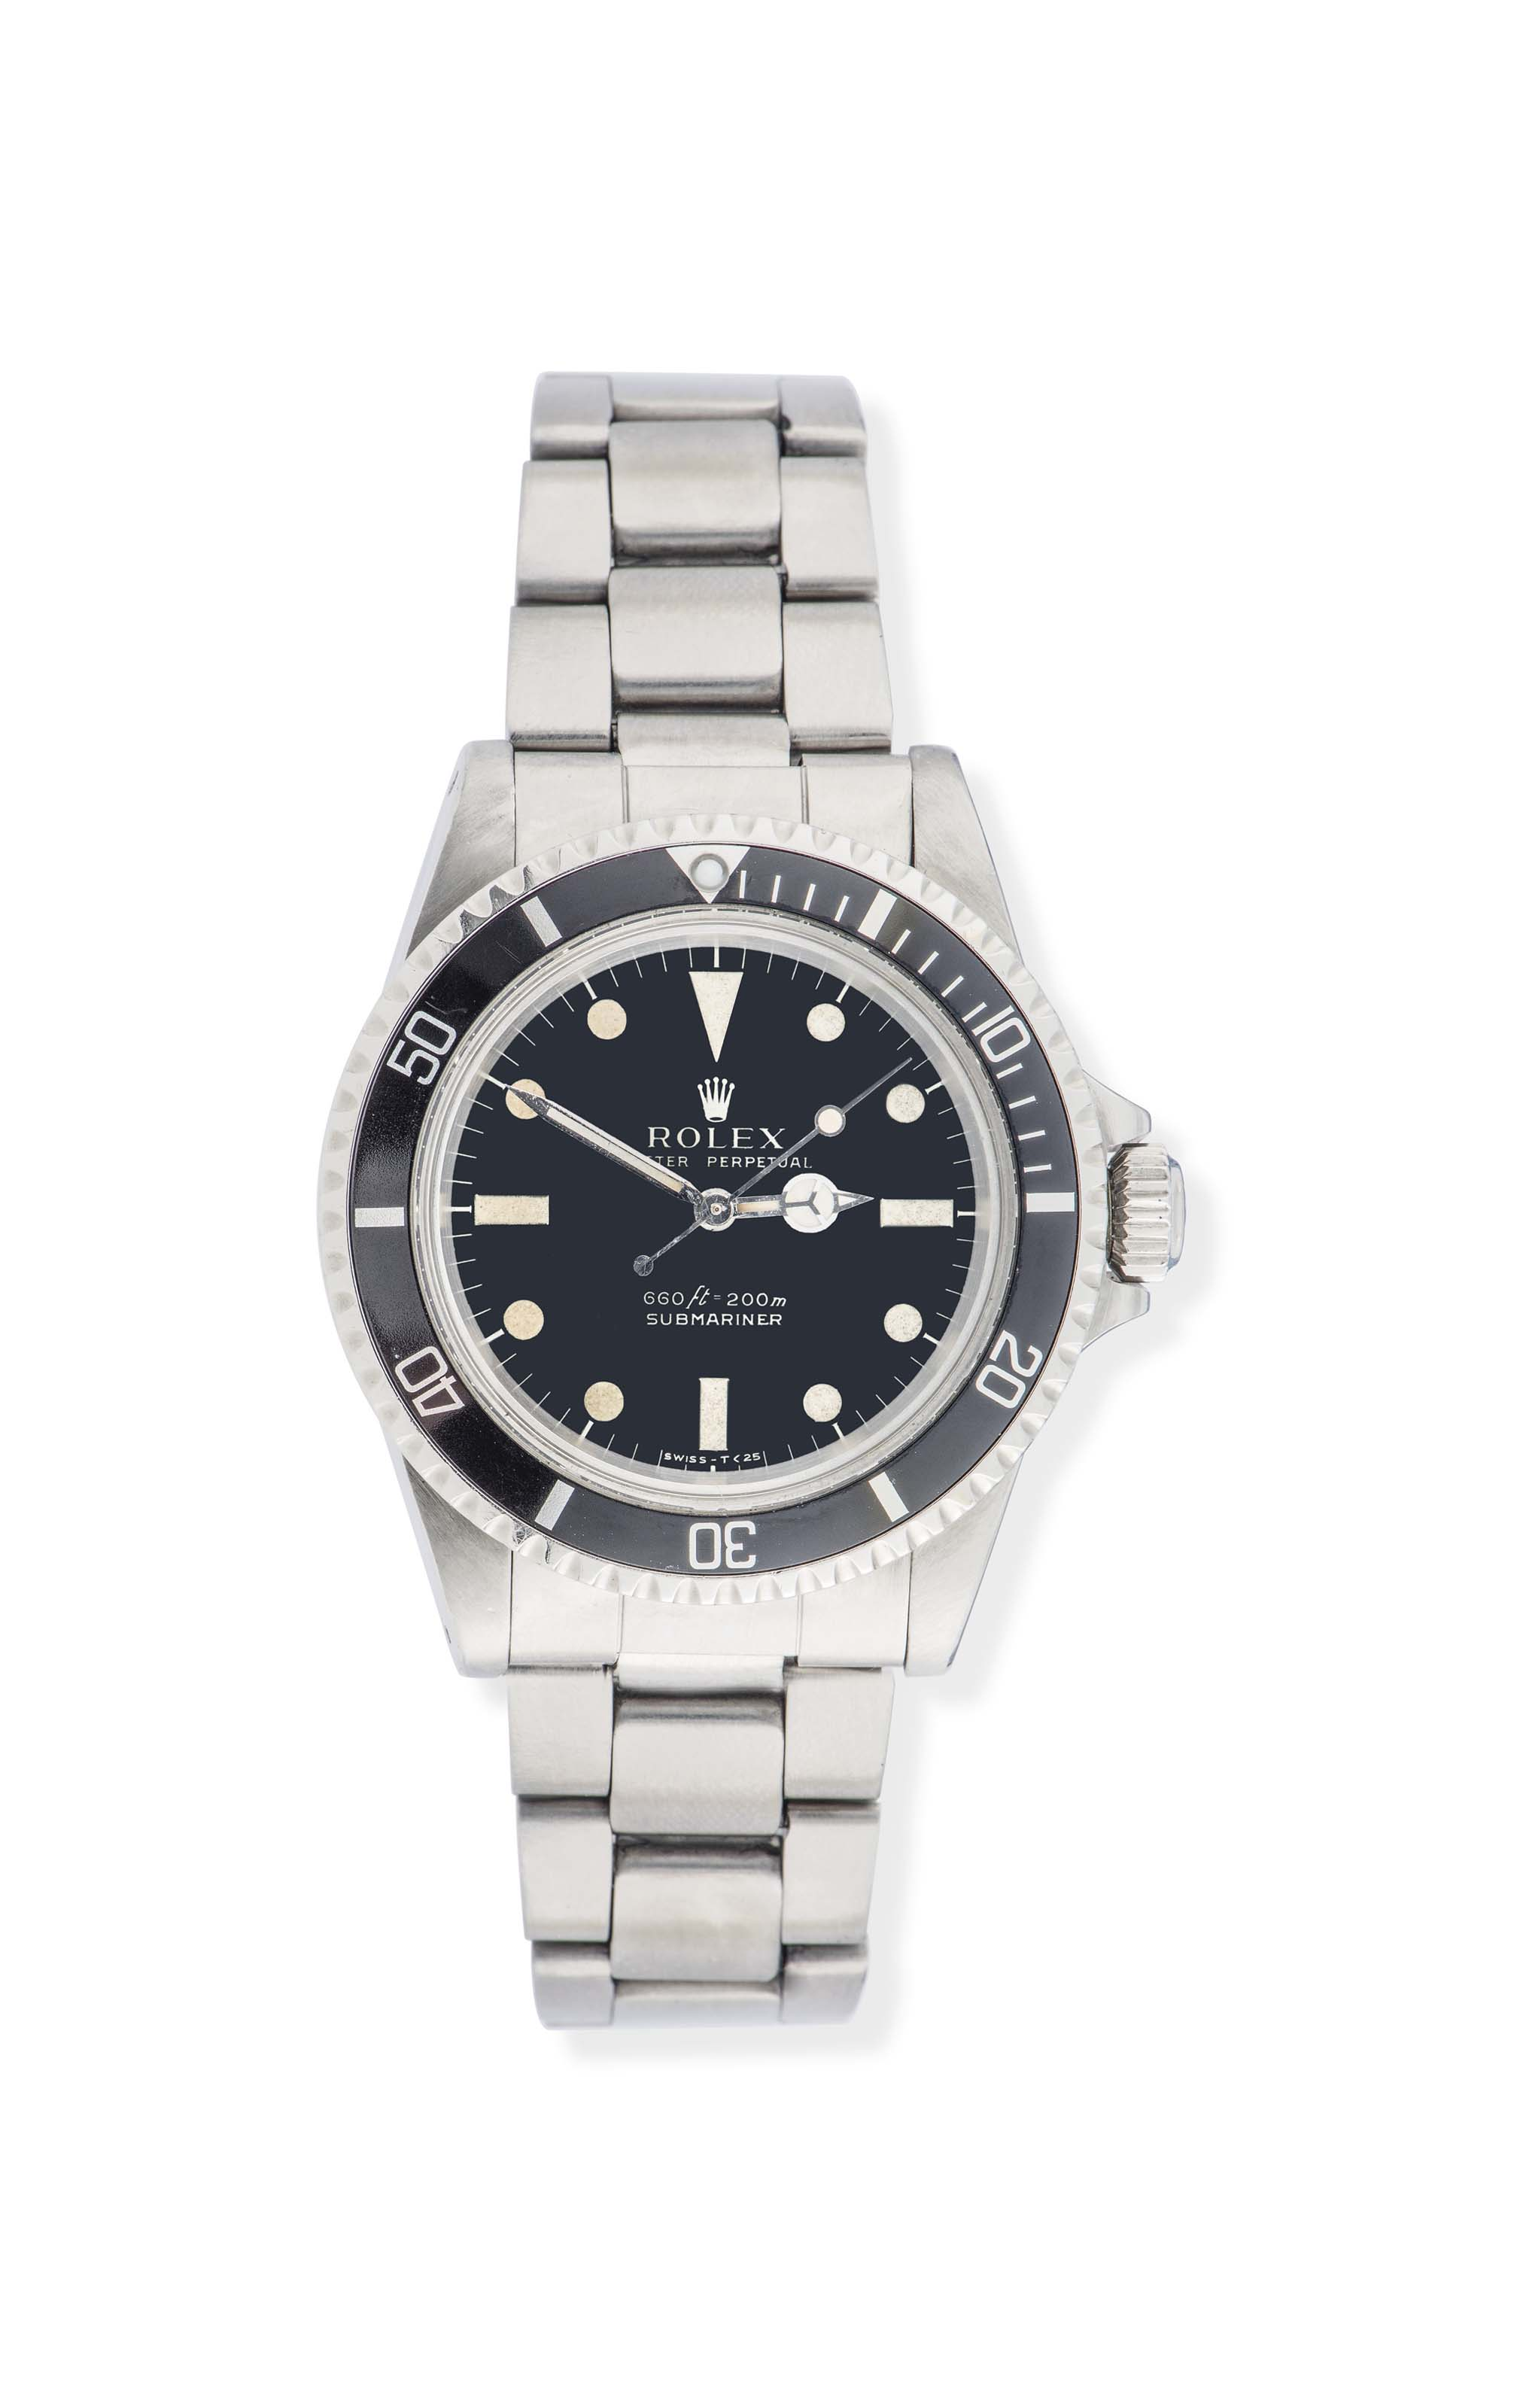 A STAINLESS STEEL 'SUBMARINER' AUTOMATIC WRISTWATCH, BY ROLEX, REF. 5513